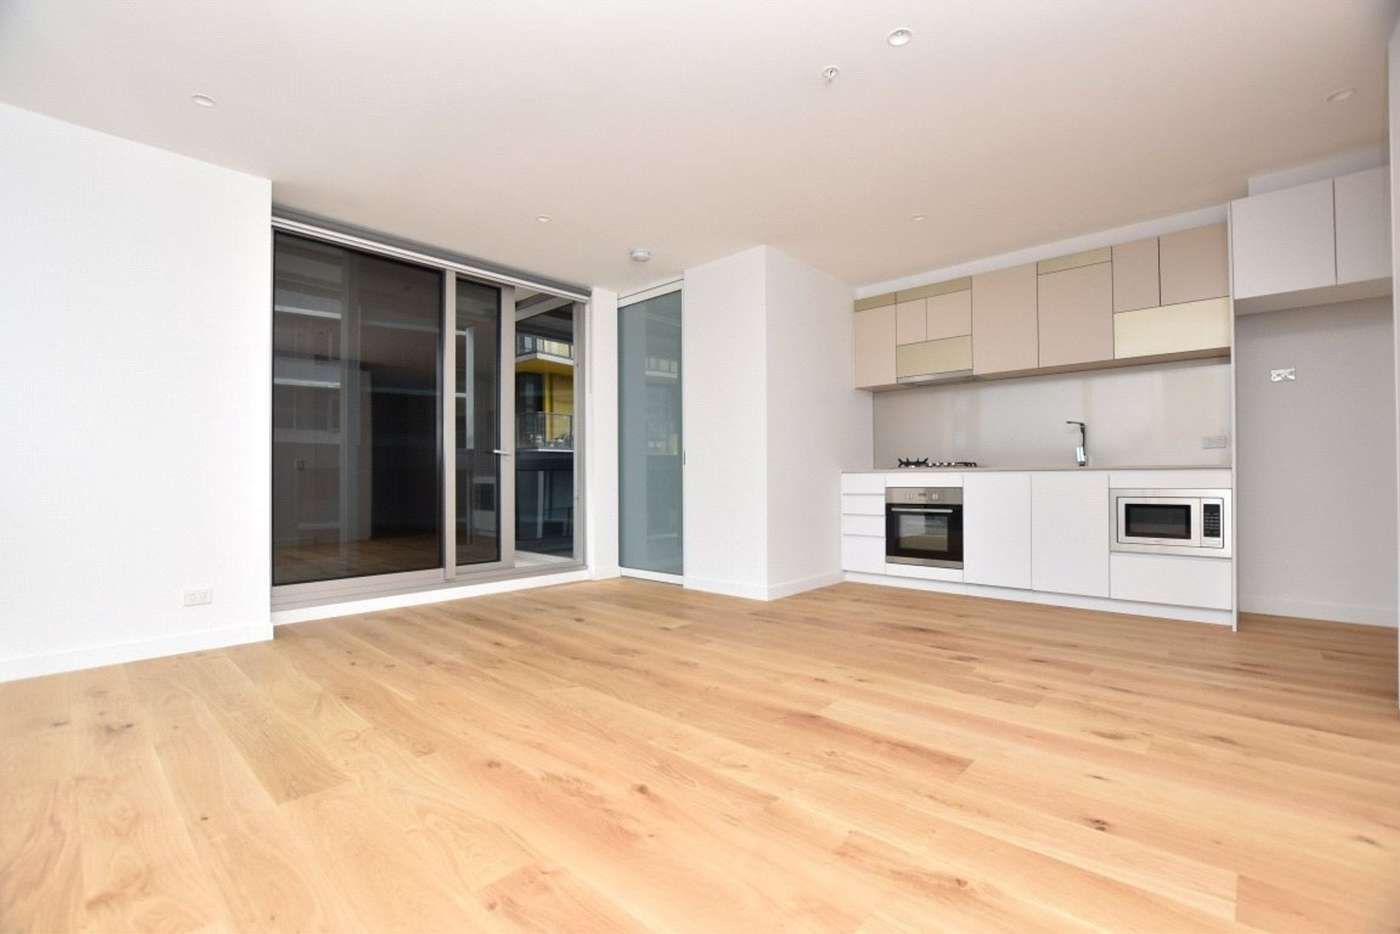 Main view of Homely apartment listing, 3307/38 Rose Lane, Melbourne VIC 3000